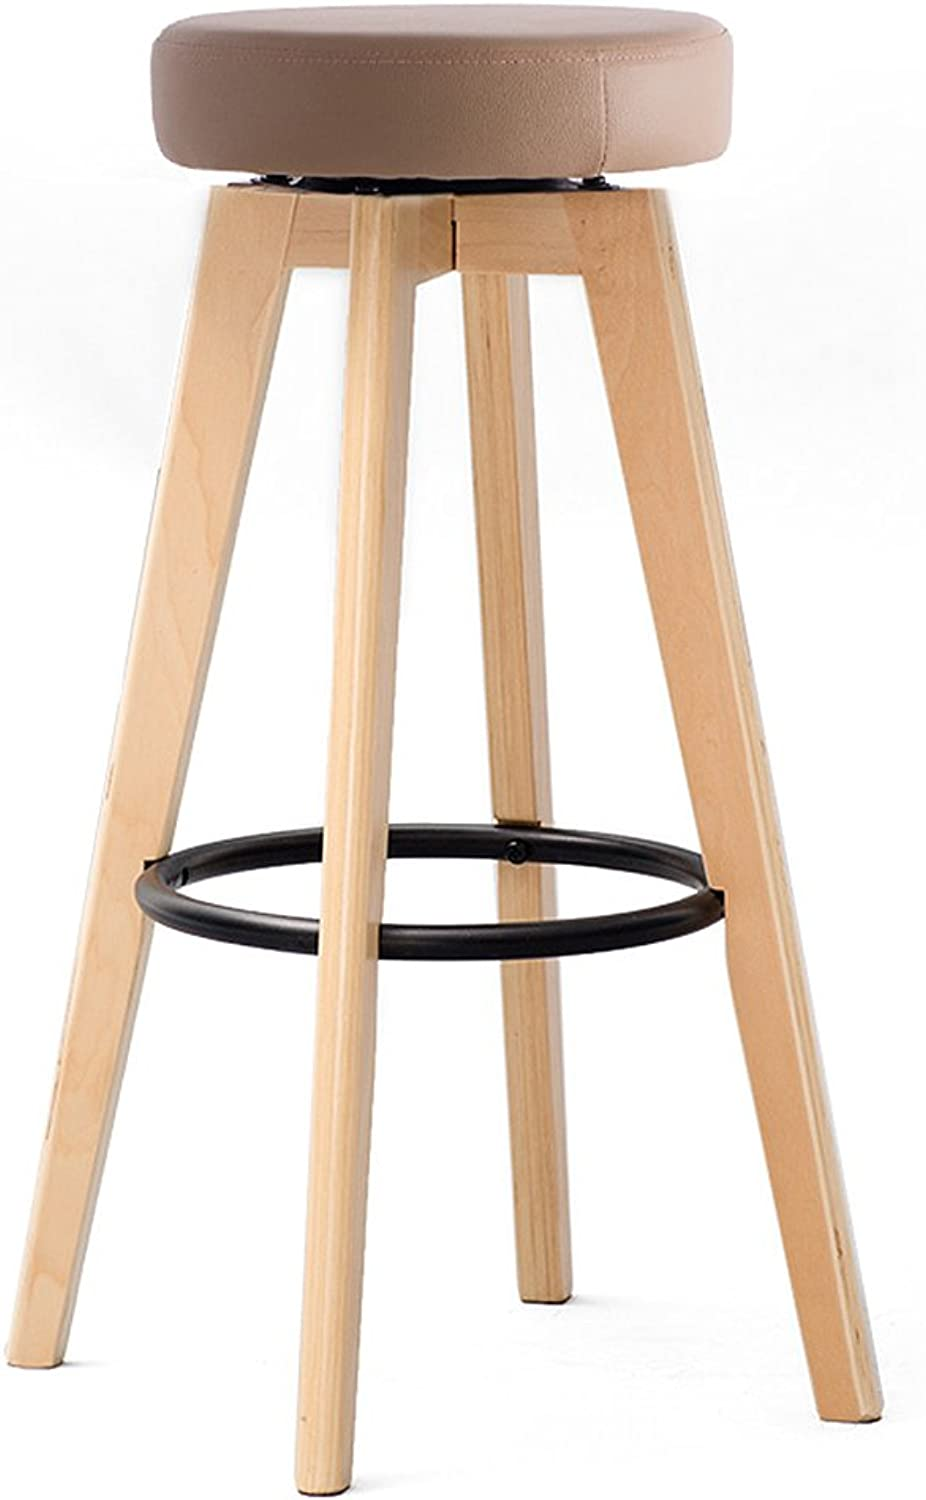 Modern Wooden Round Swivel Bar Stool with Iron Footrest, Wood Kitchen Counter Height Bar Stool, 30 inch High Barstool with PU Cushion (color   Natural)